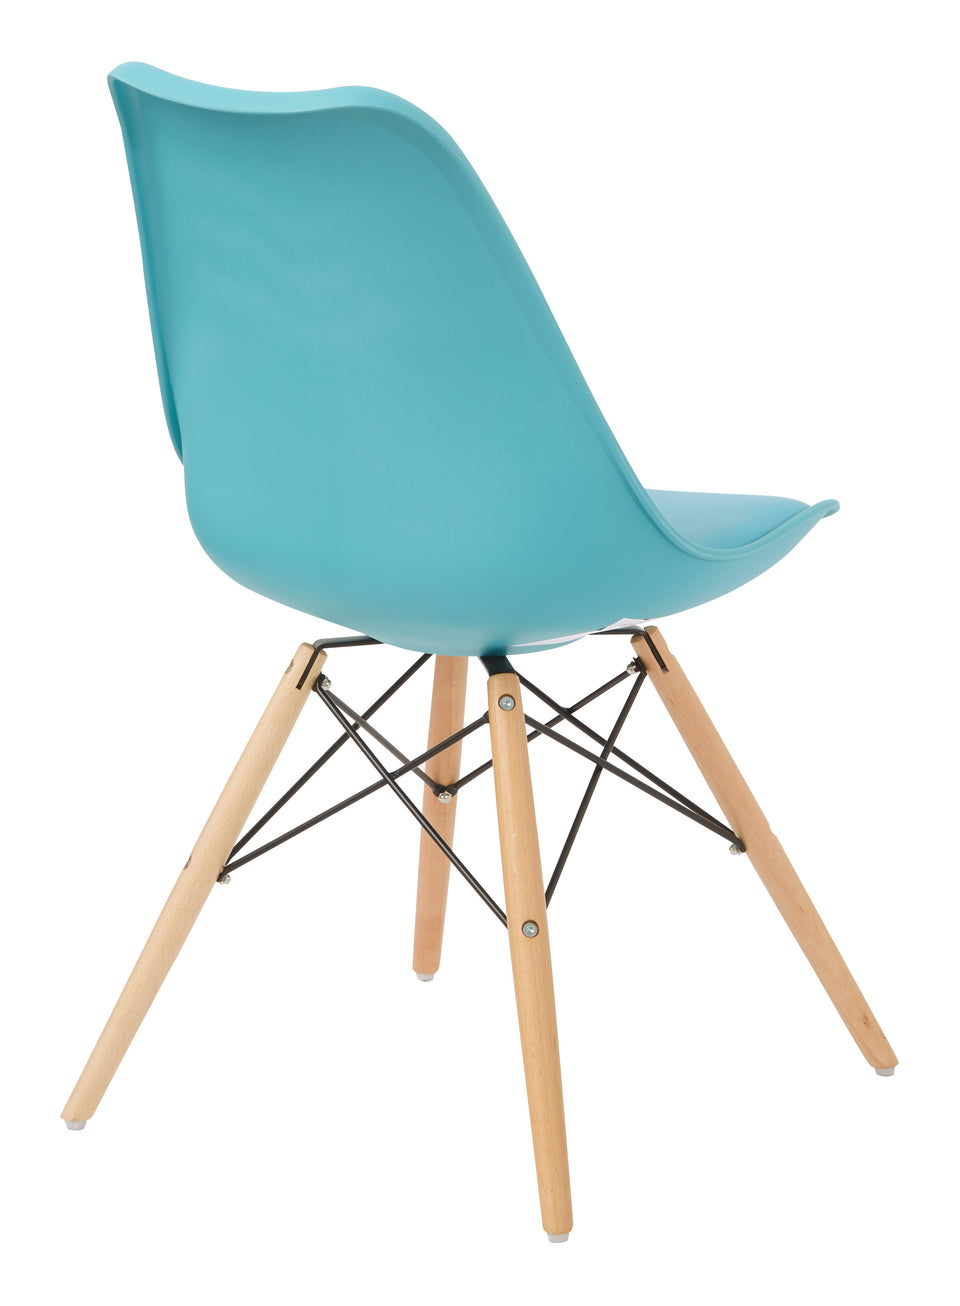 mid century modern aimes blue bucket chair with natural post legs scandinavian design inspired from decurban.com angle back view